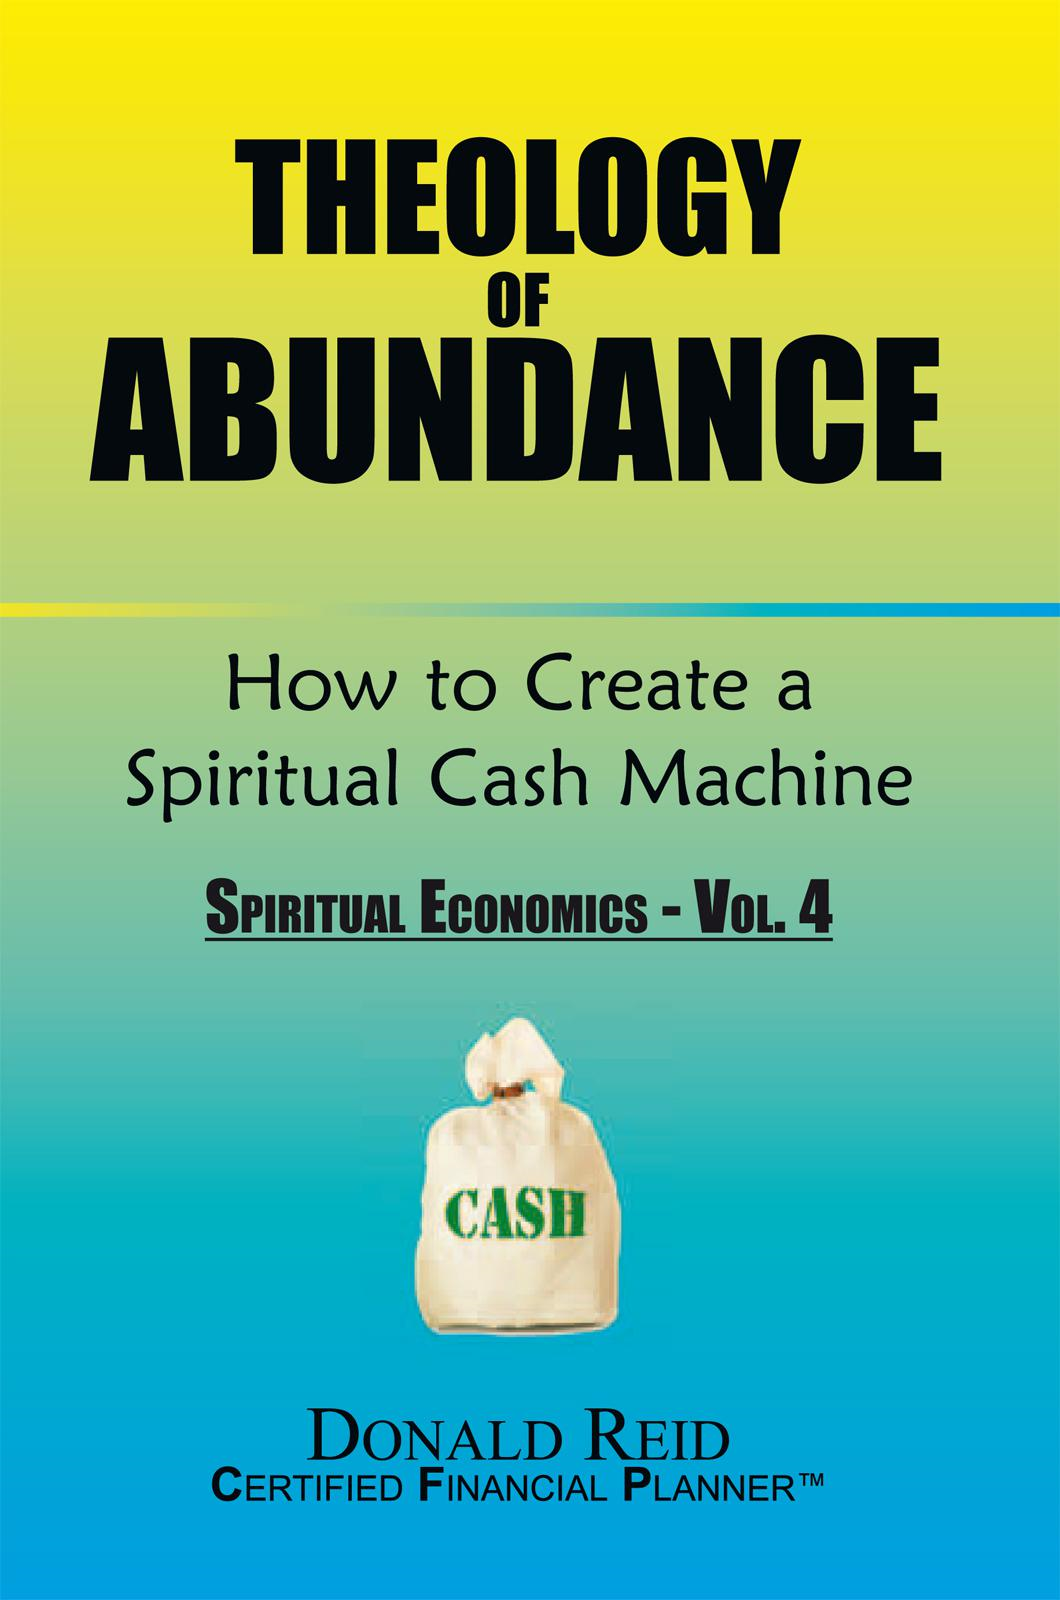 Theology of Abundance: How to Create a Spiritual Cash Machine